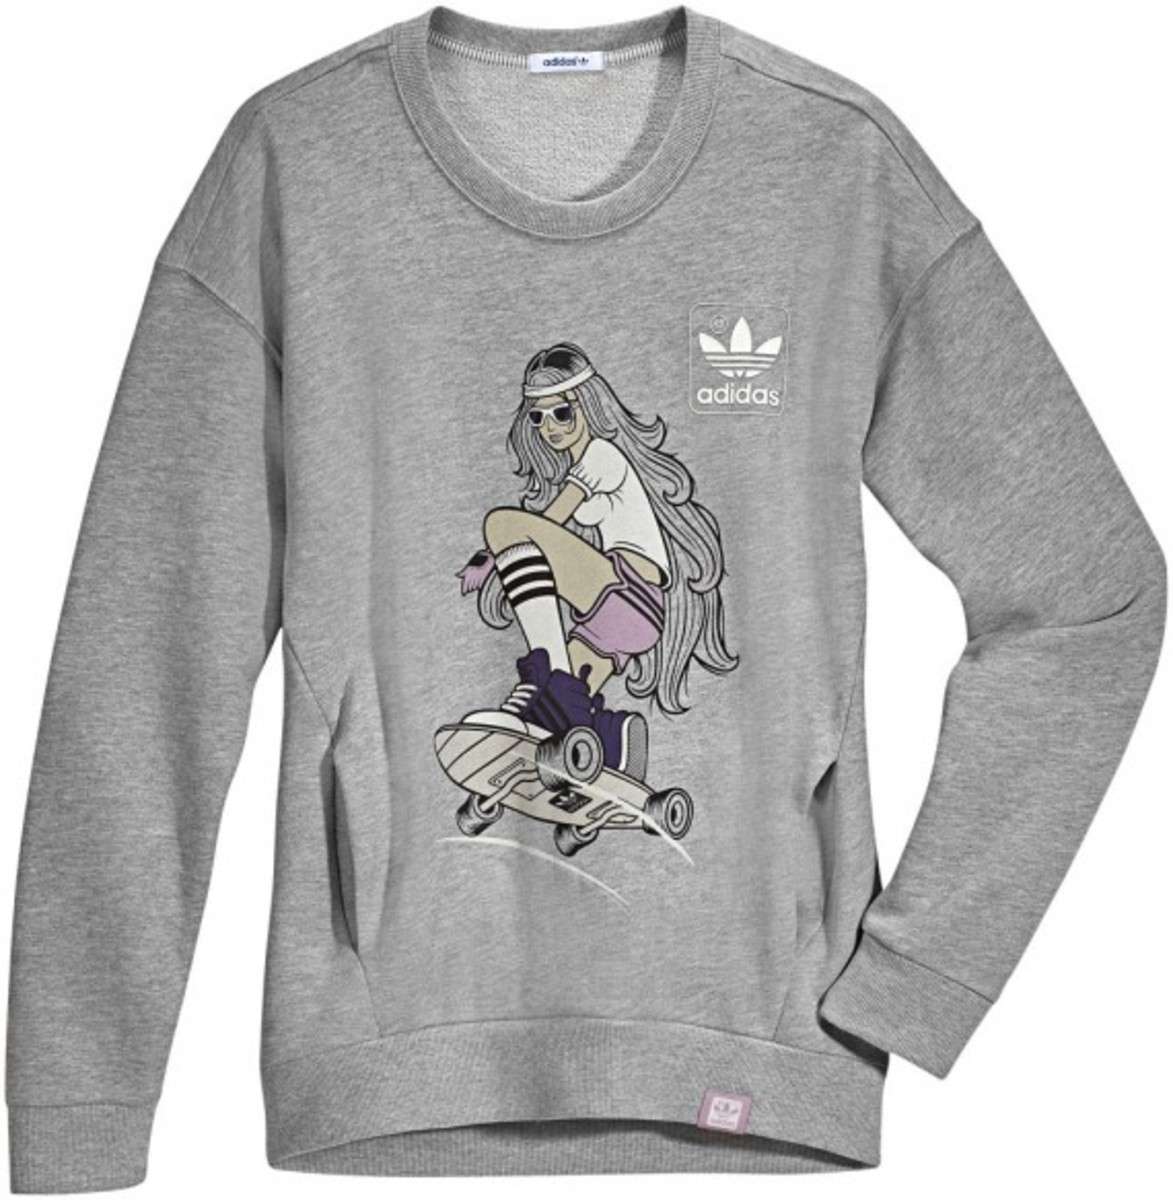 adidas-originals-st-collection-womens-fall-winter-2011-02